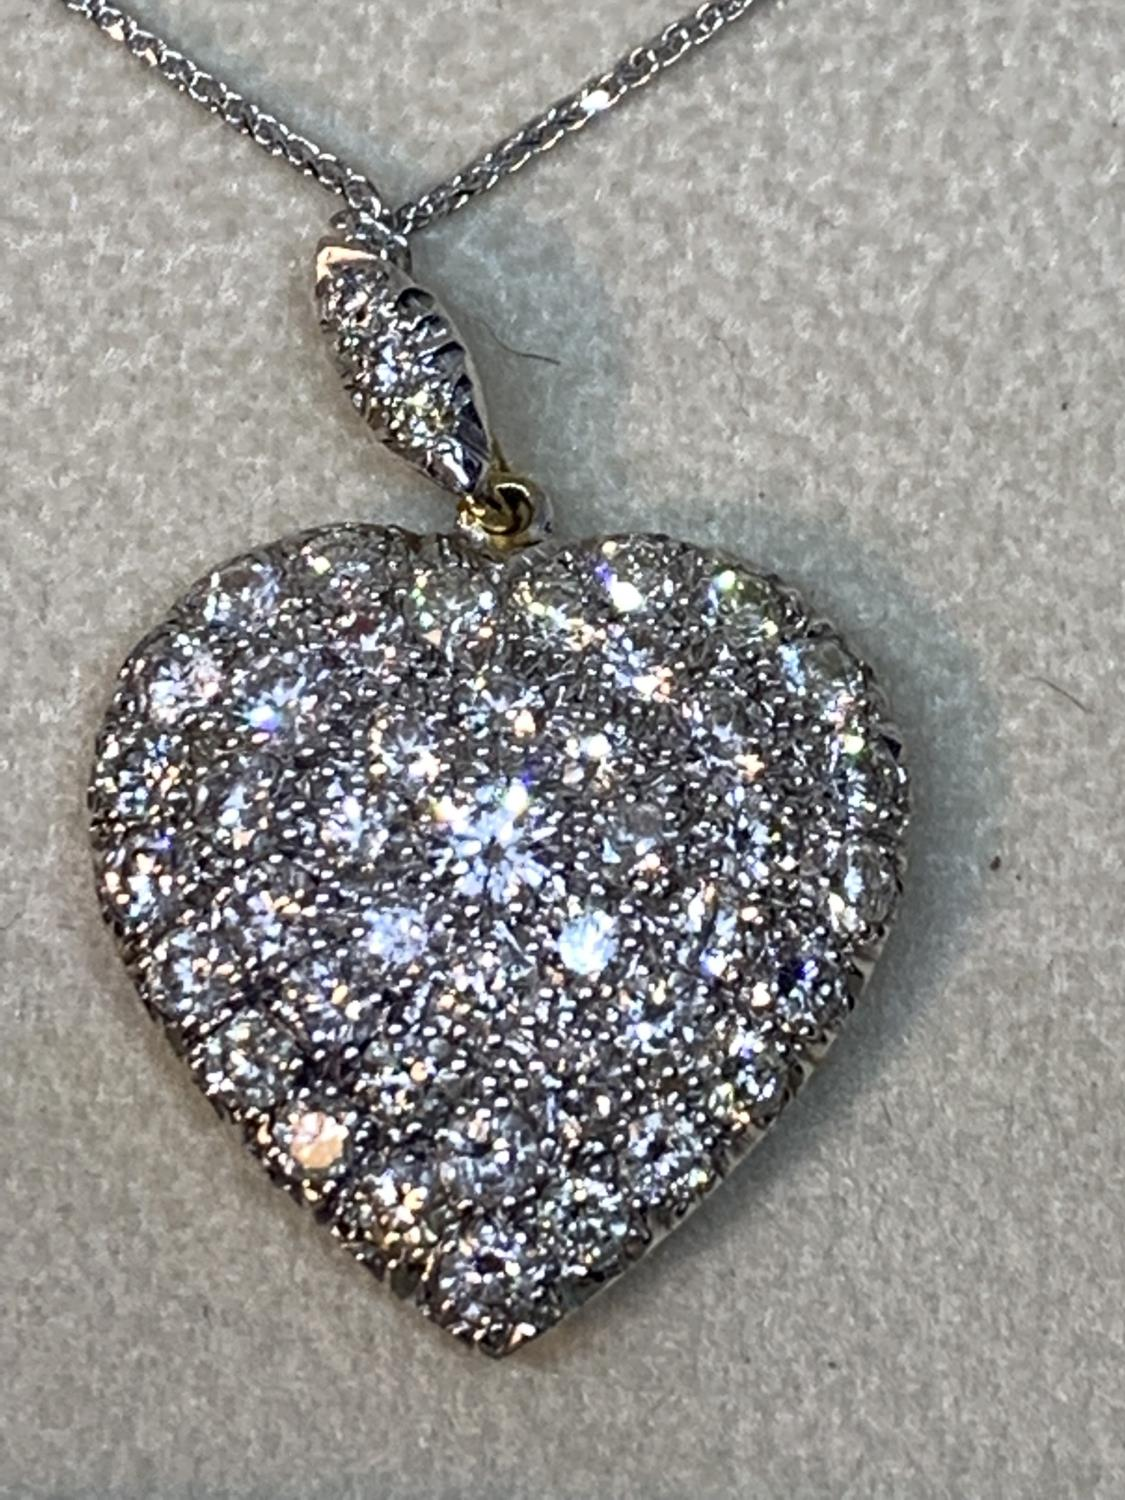 A 15 CARAT WHITE AND YELLOW GOLD LARGE DIAMOND ENCRUSTED HEART PENDANT WITH CHAIN LENGTH 44CM IN A - Image 8 of 8